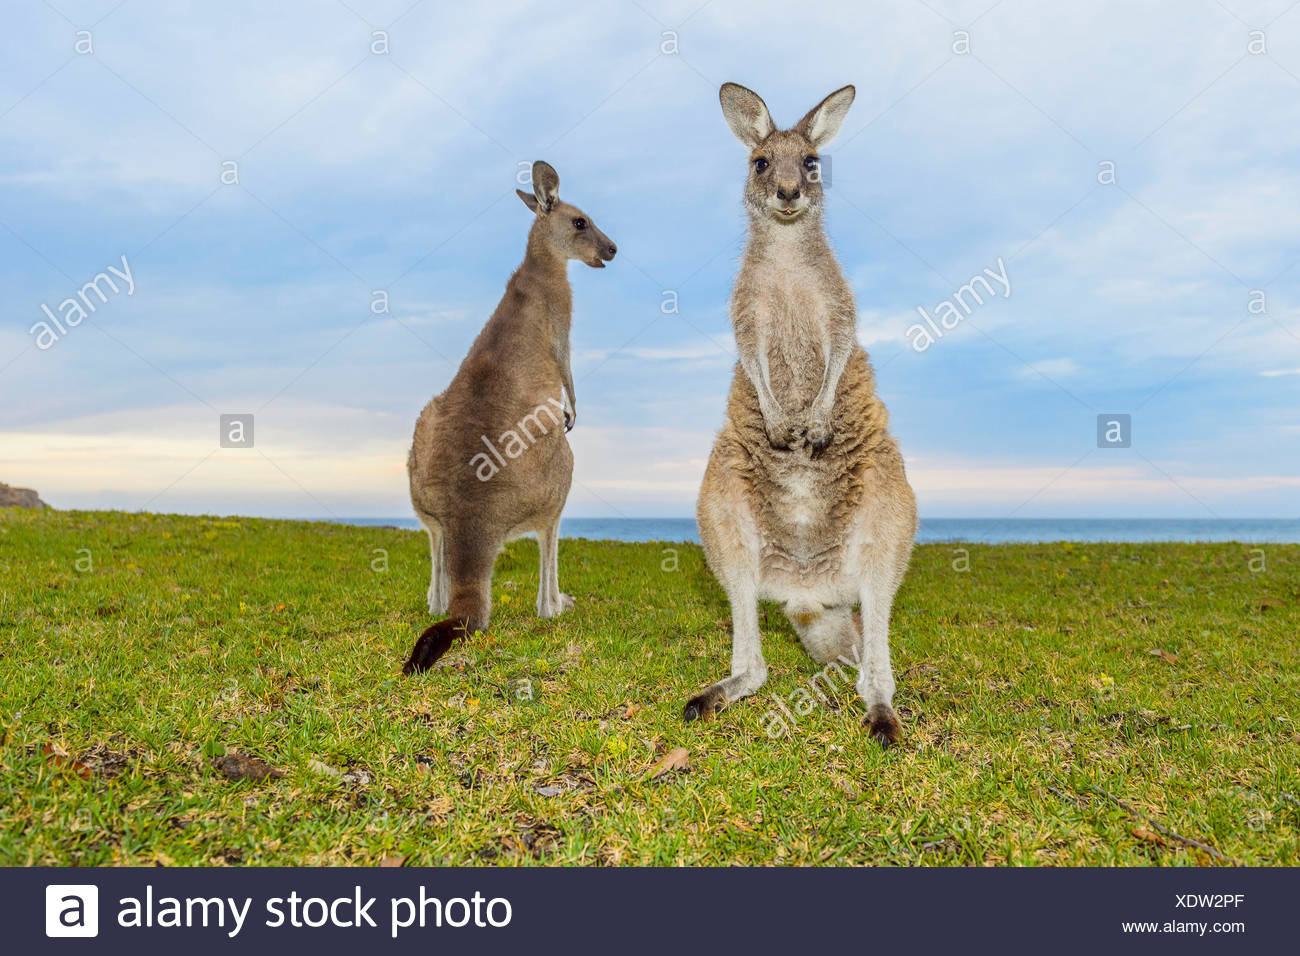 Grigio canguro, Macropus giganteus, due animali, Murramarang National Park, New South Wales, Australia Immagini Stock